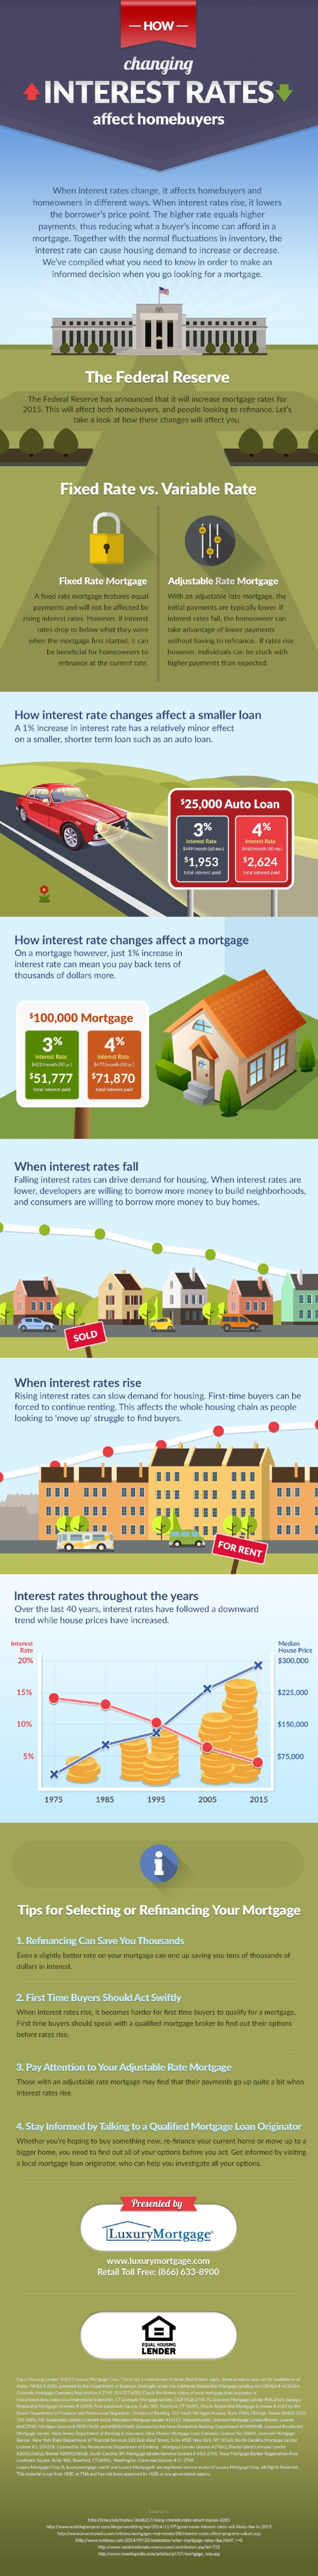 how-changing-interest-rates-affect-homebuyers_5547b420c6d44